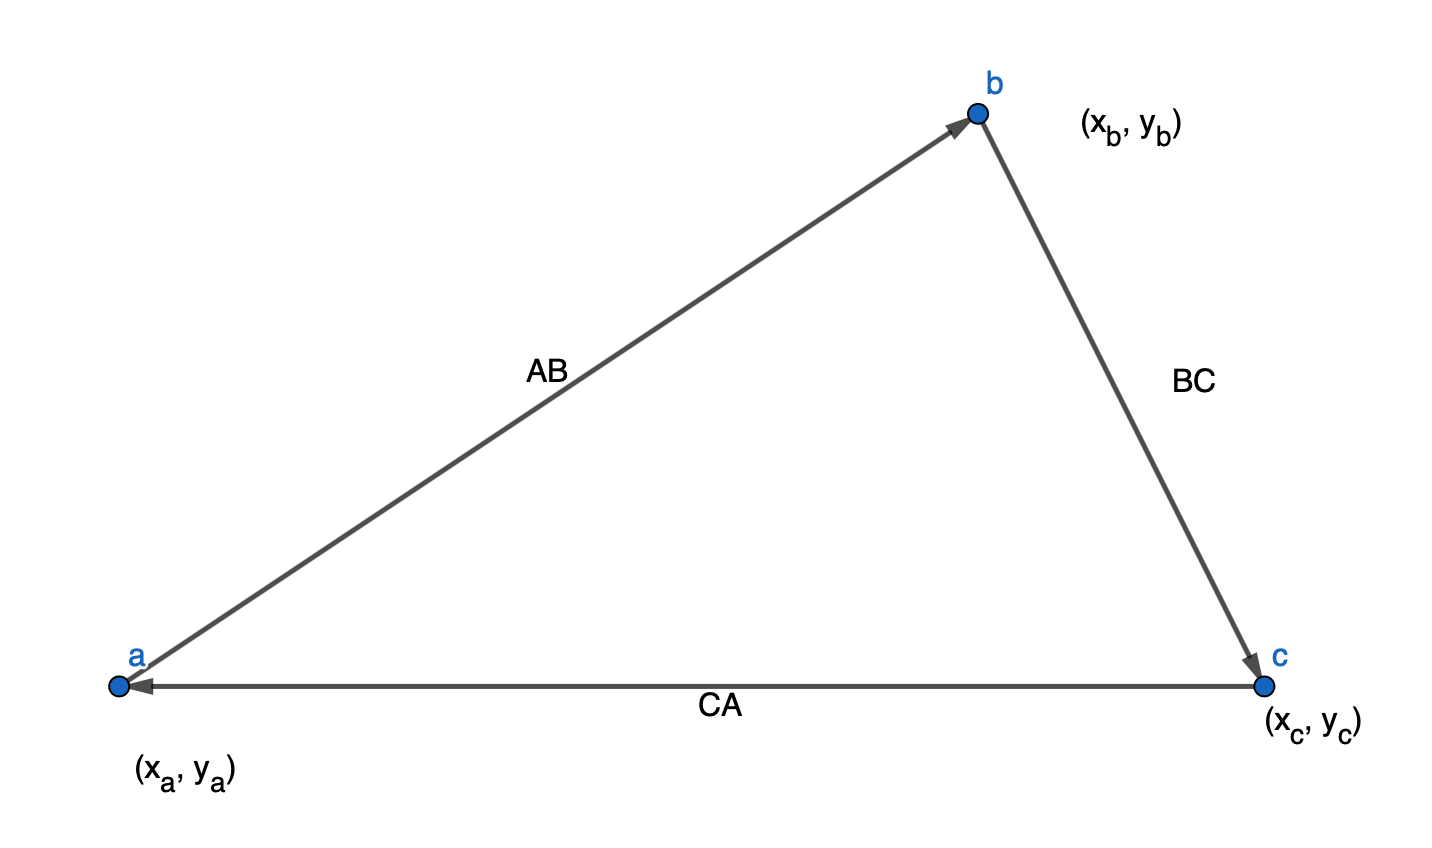 Triangle connecting points (x_a, y_a), (x_b, y_b) and (x_c, y_c), creating the lines AB, BC and CA.